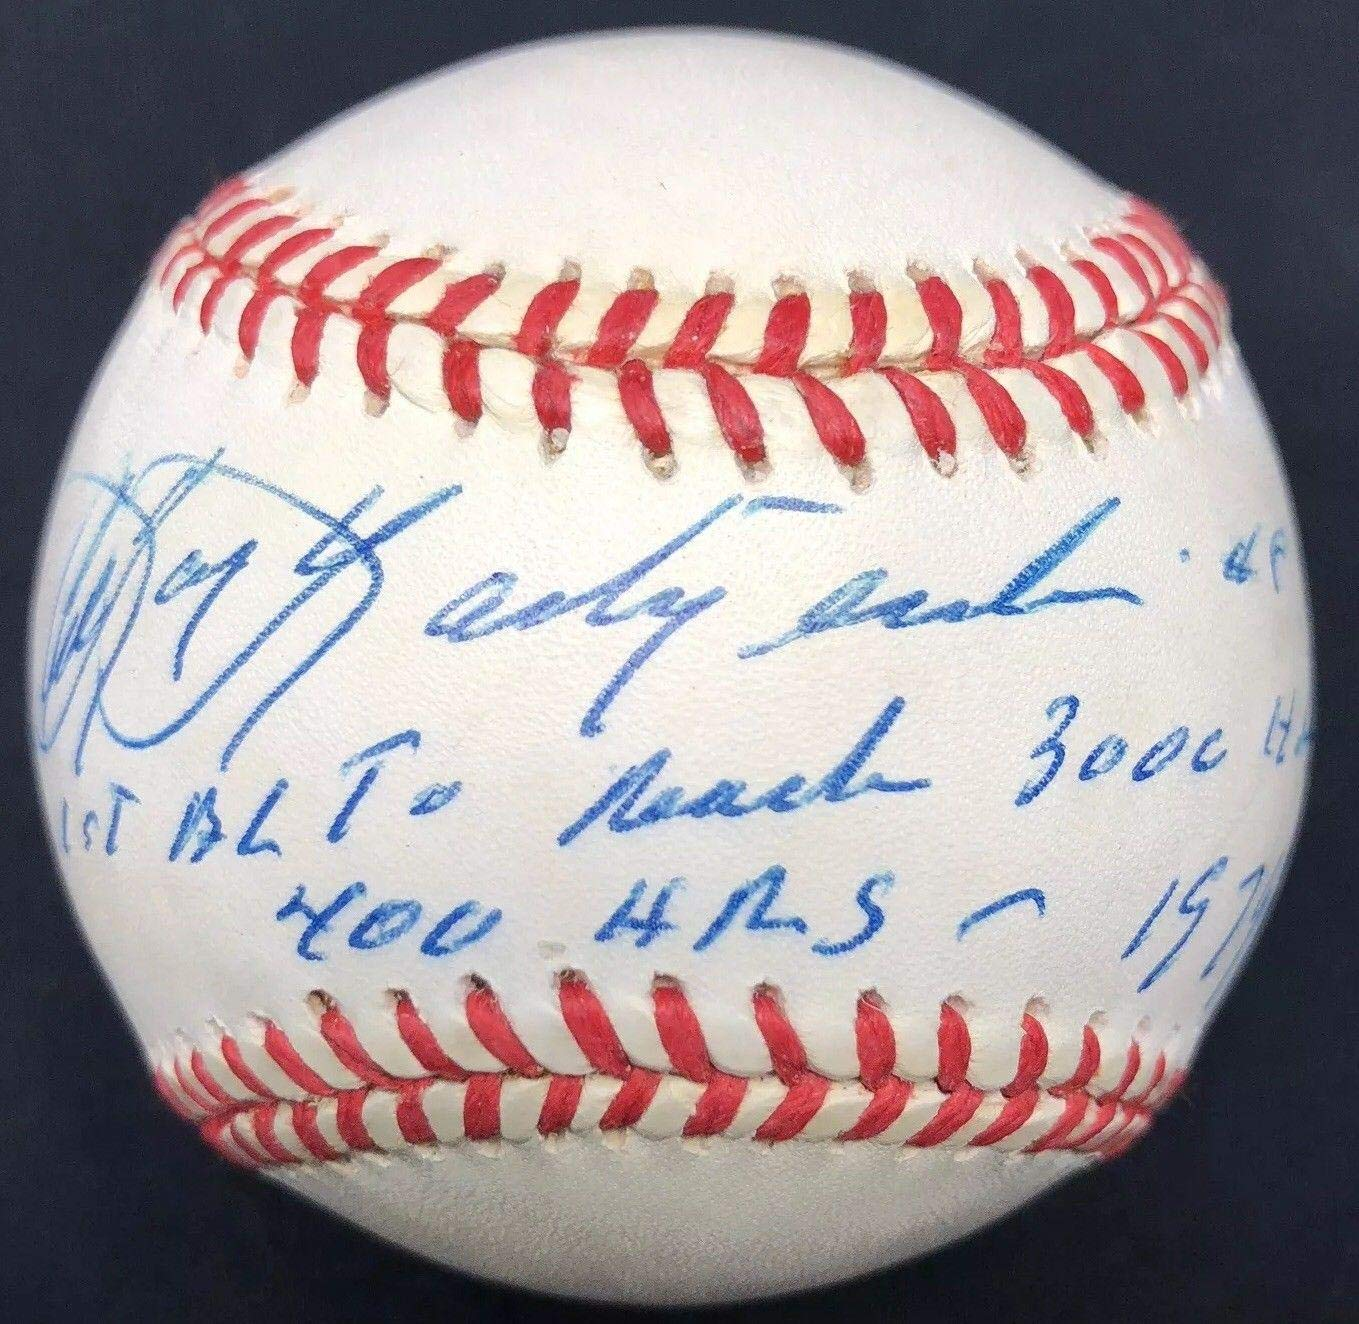 11db4b44a43 Carl Yastrzemski Signed Baseball - Yaz - PSA DNA Certified - Autographed  Baseballs at Amazon s Sports Collectibles Store